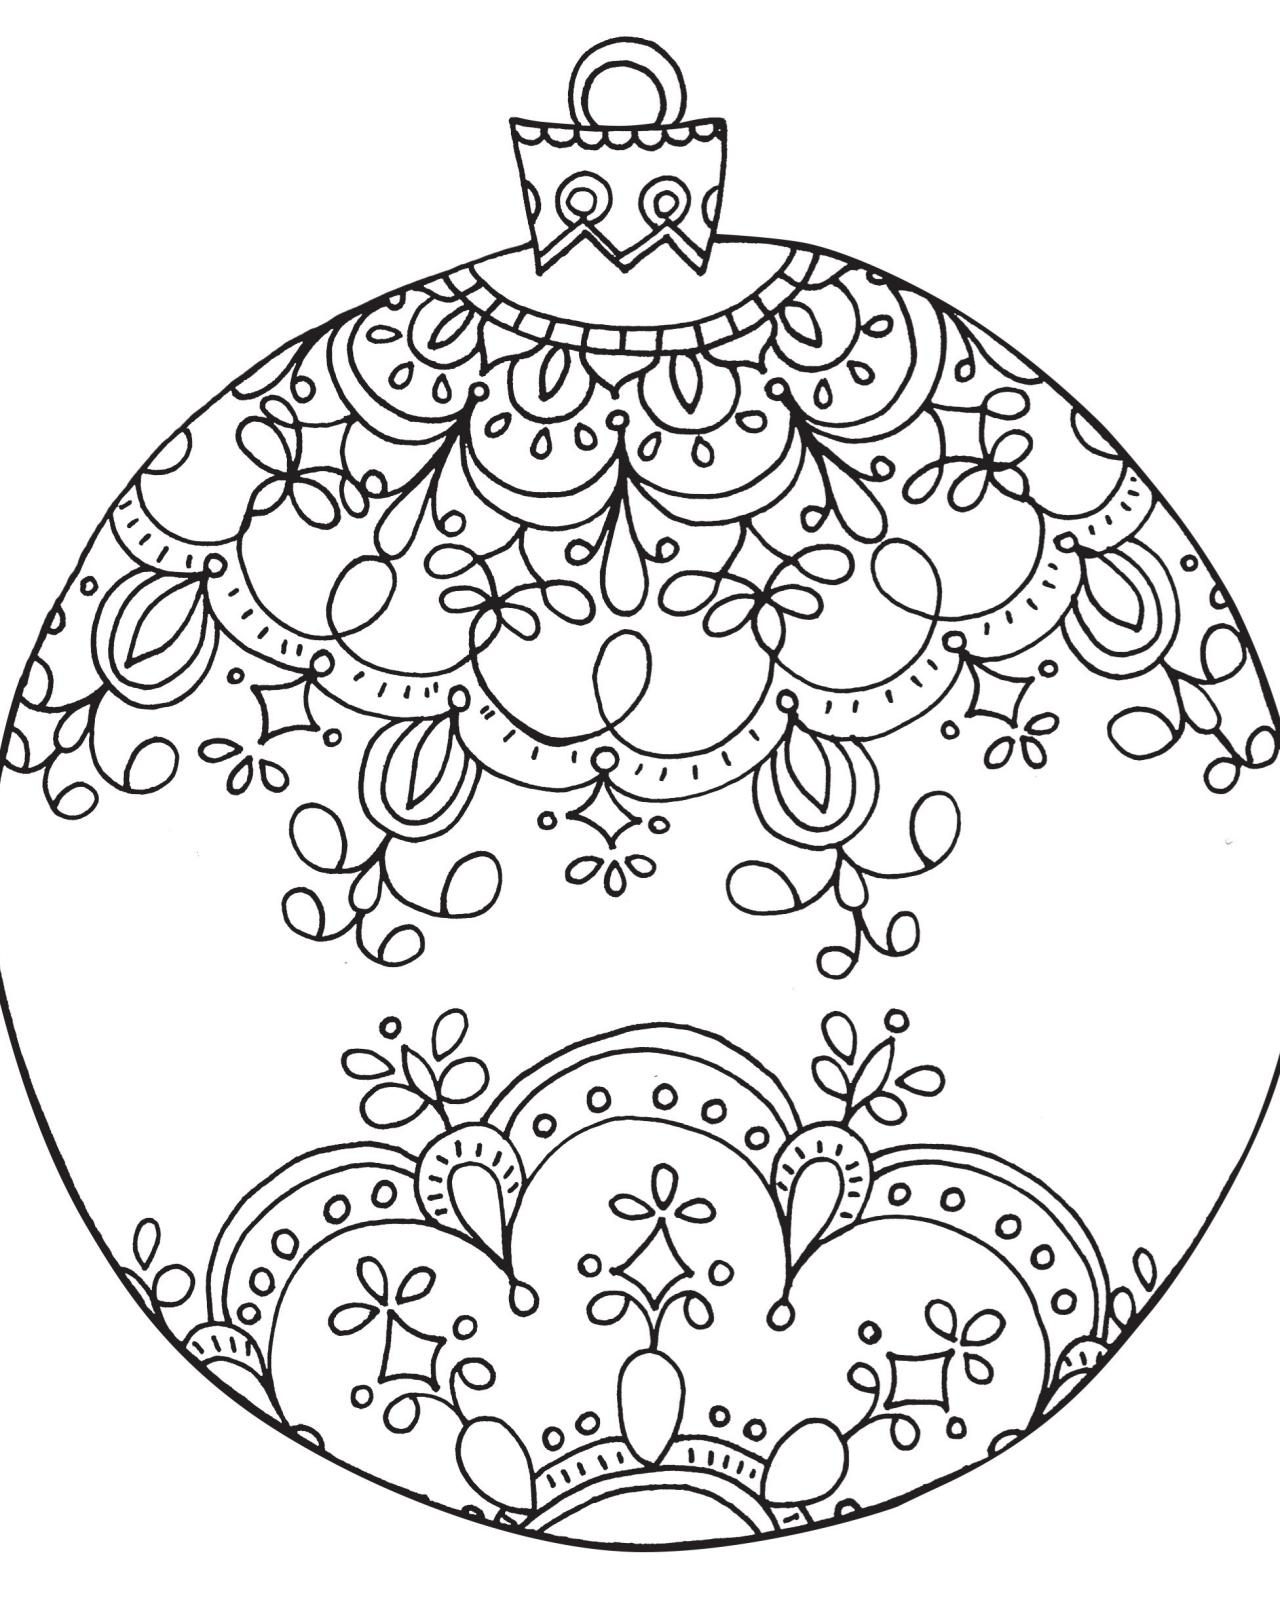 Drawn christmas ornaments color cut out Christmas Ornaments Page  For